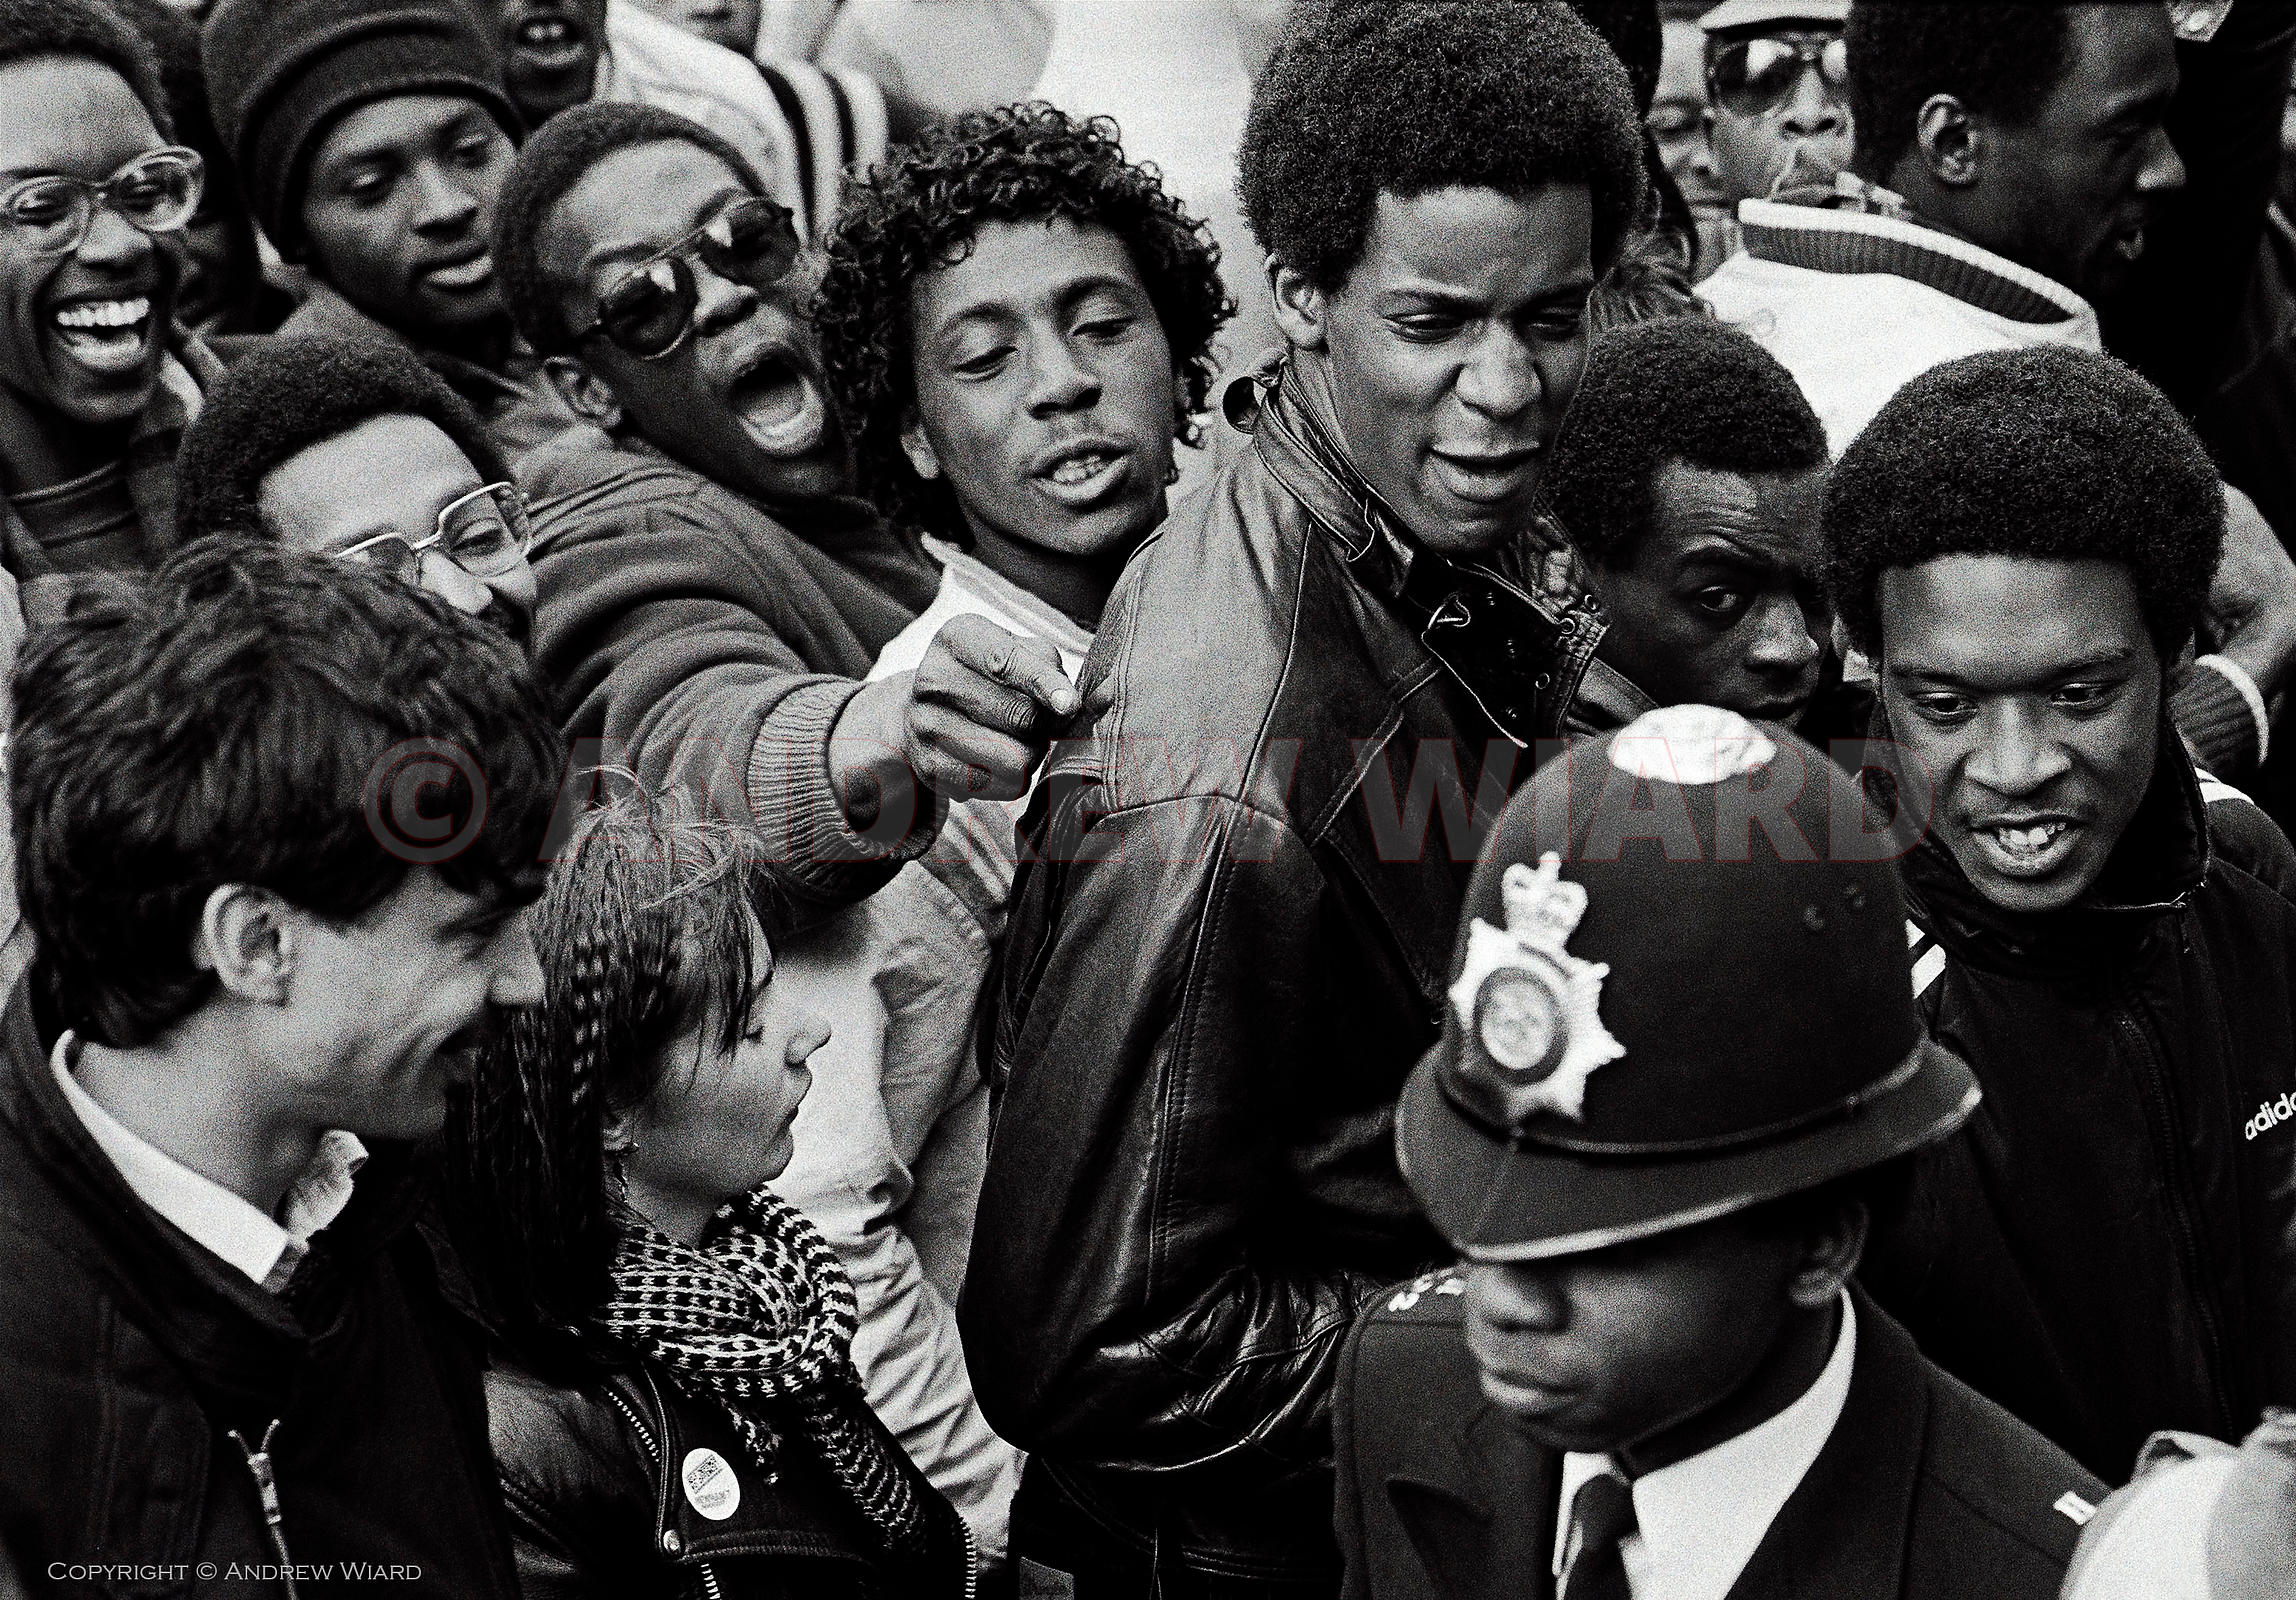 Youths show contempt for a black police officer during a National Demonstration Against Racism in Newham in 1985. The demonst...